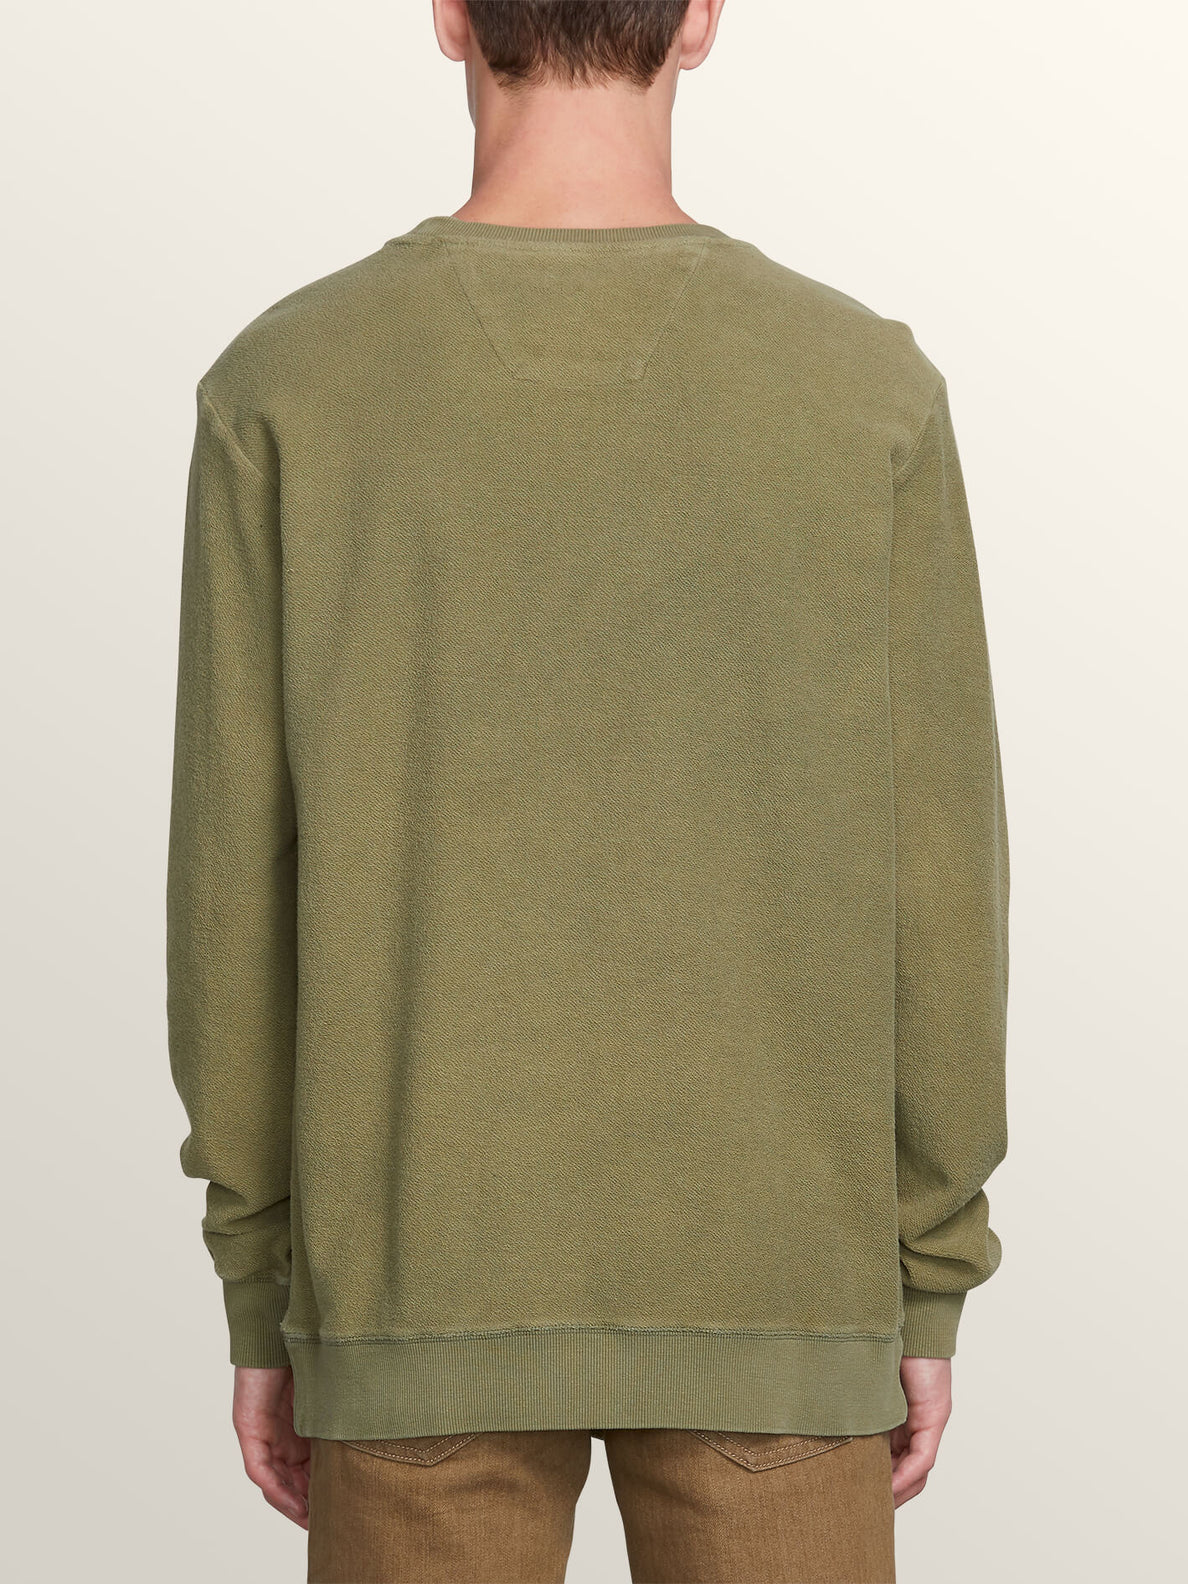 Sub Void Crew Sweatshirt In Vineyard Green, Back View